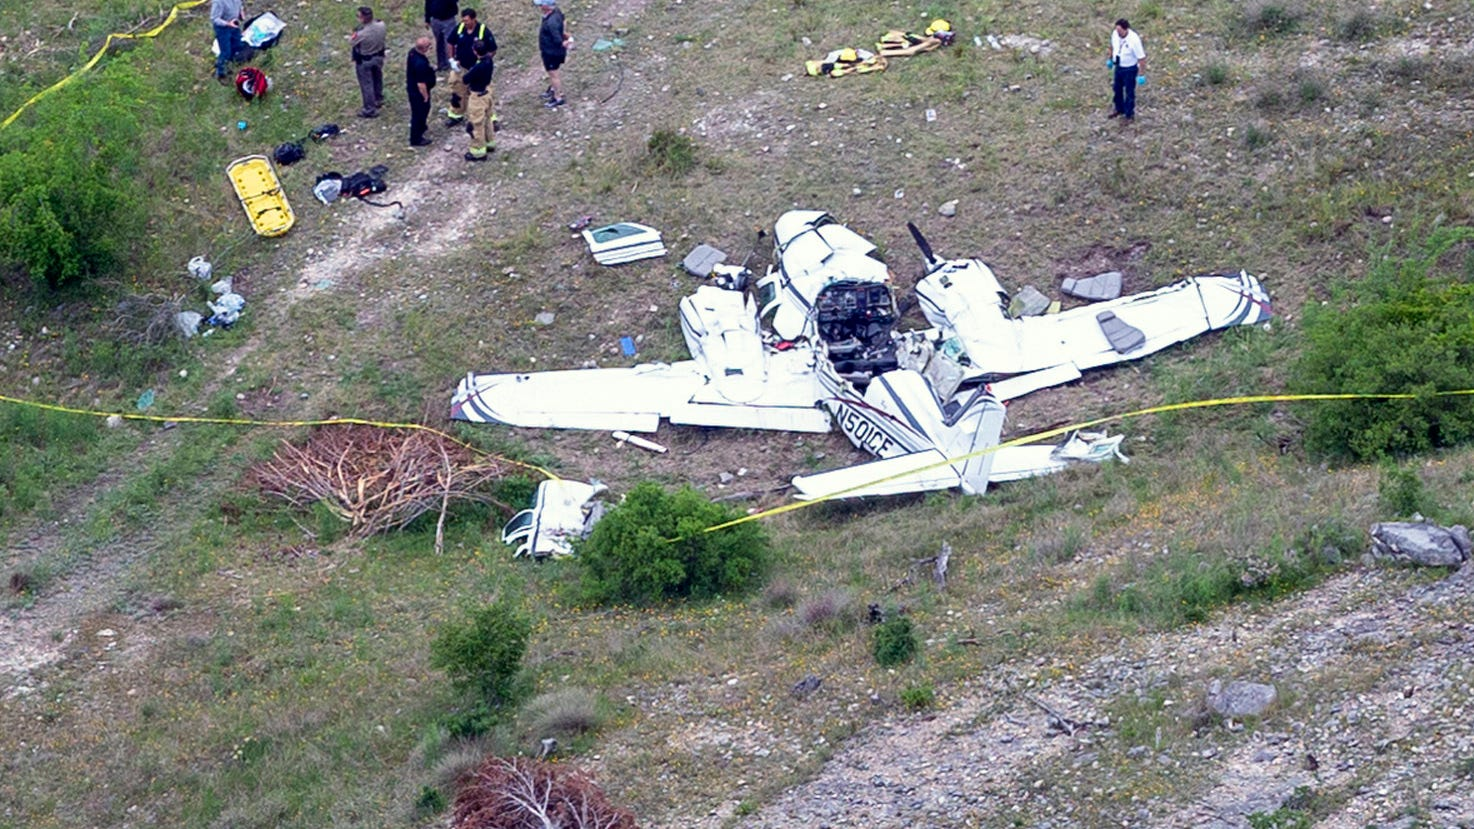 Authorities investigate at the crash scene of a twin-engine Beechcraft BE58, Monday, April 22, 2019, near Kerrville, Texas. The pilot and the five other people aboard the plane were all killed, said Sgt. Orlando Moreno, a spokesman for the Texas Department of Public Safety. (William Luther/The San Antonio Express-News via AP) ORG XMIT: TXSAE101